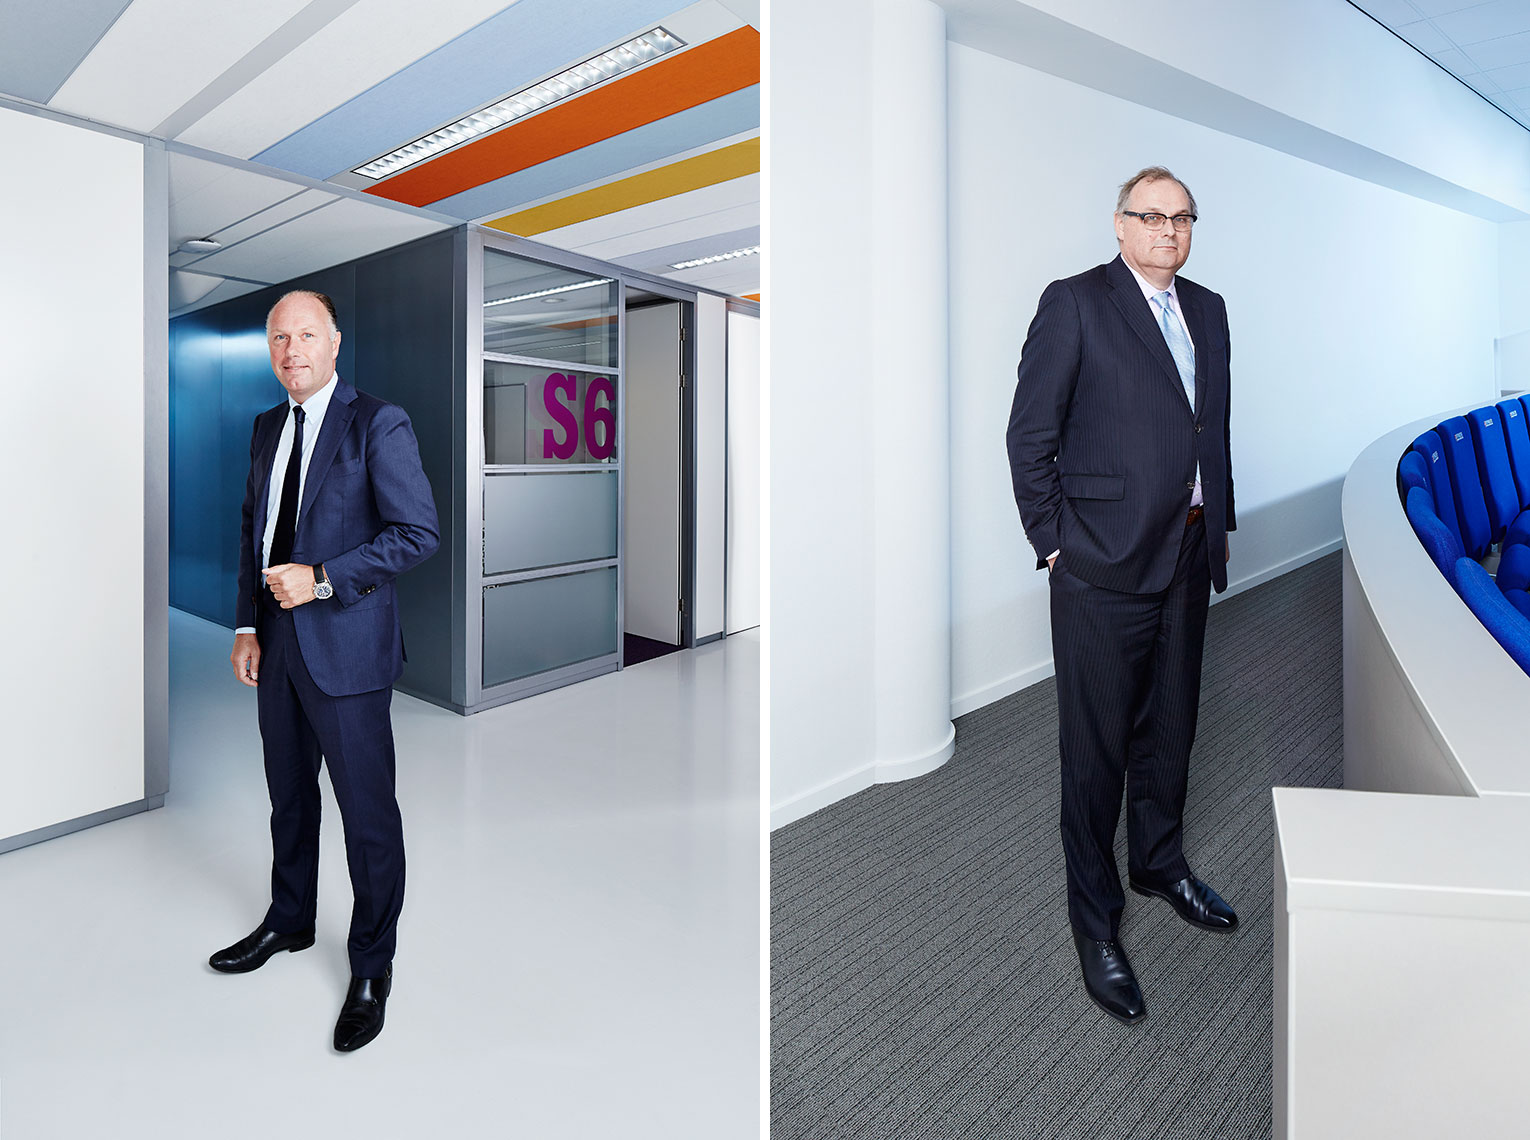 Portraits of ING Nick Jue and professor Jaap Koelewijn